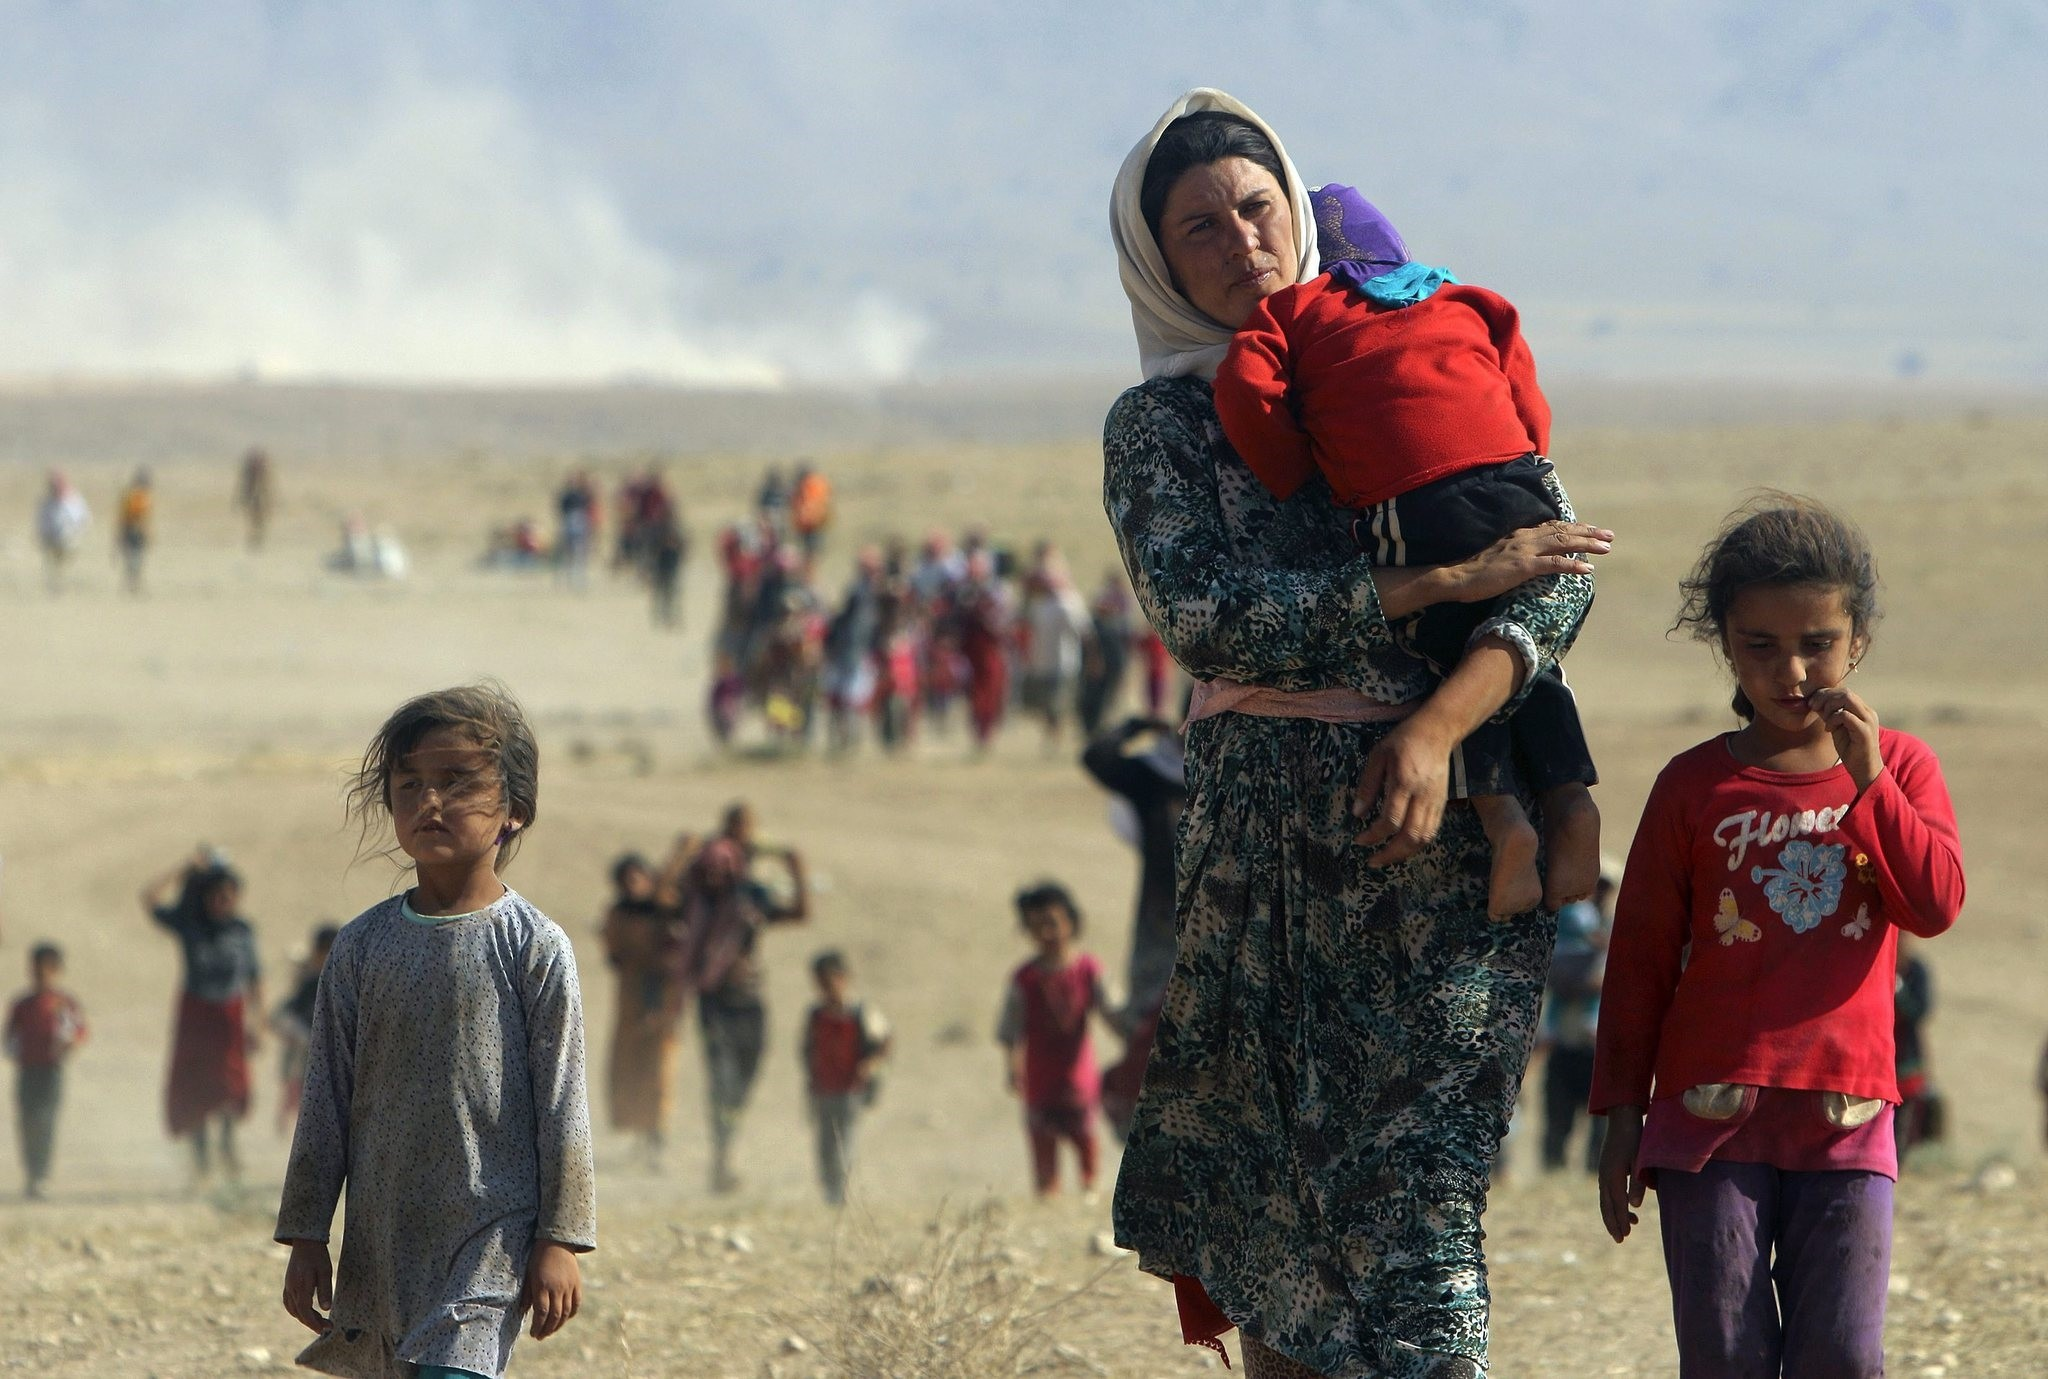 Displaced people from the minority Yazidi sect, fleeing violence from forces loyal to the Islamic State in Sinjar town, walk towards the Syrian border on the outskirts of Sinjar mountain. (REUTERS Photo)